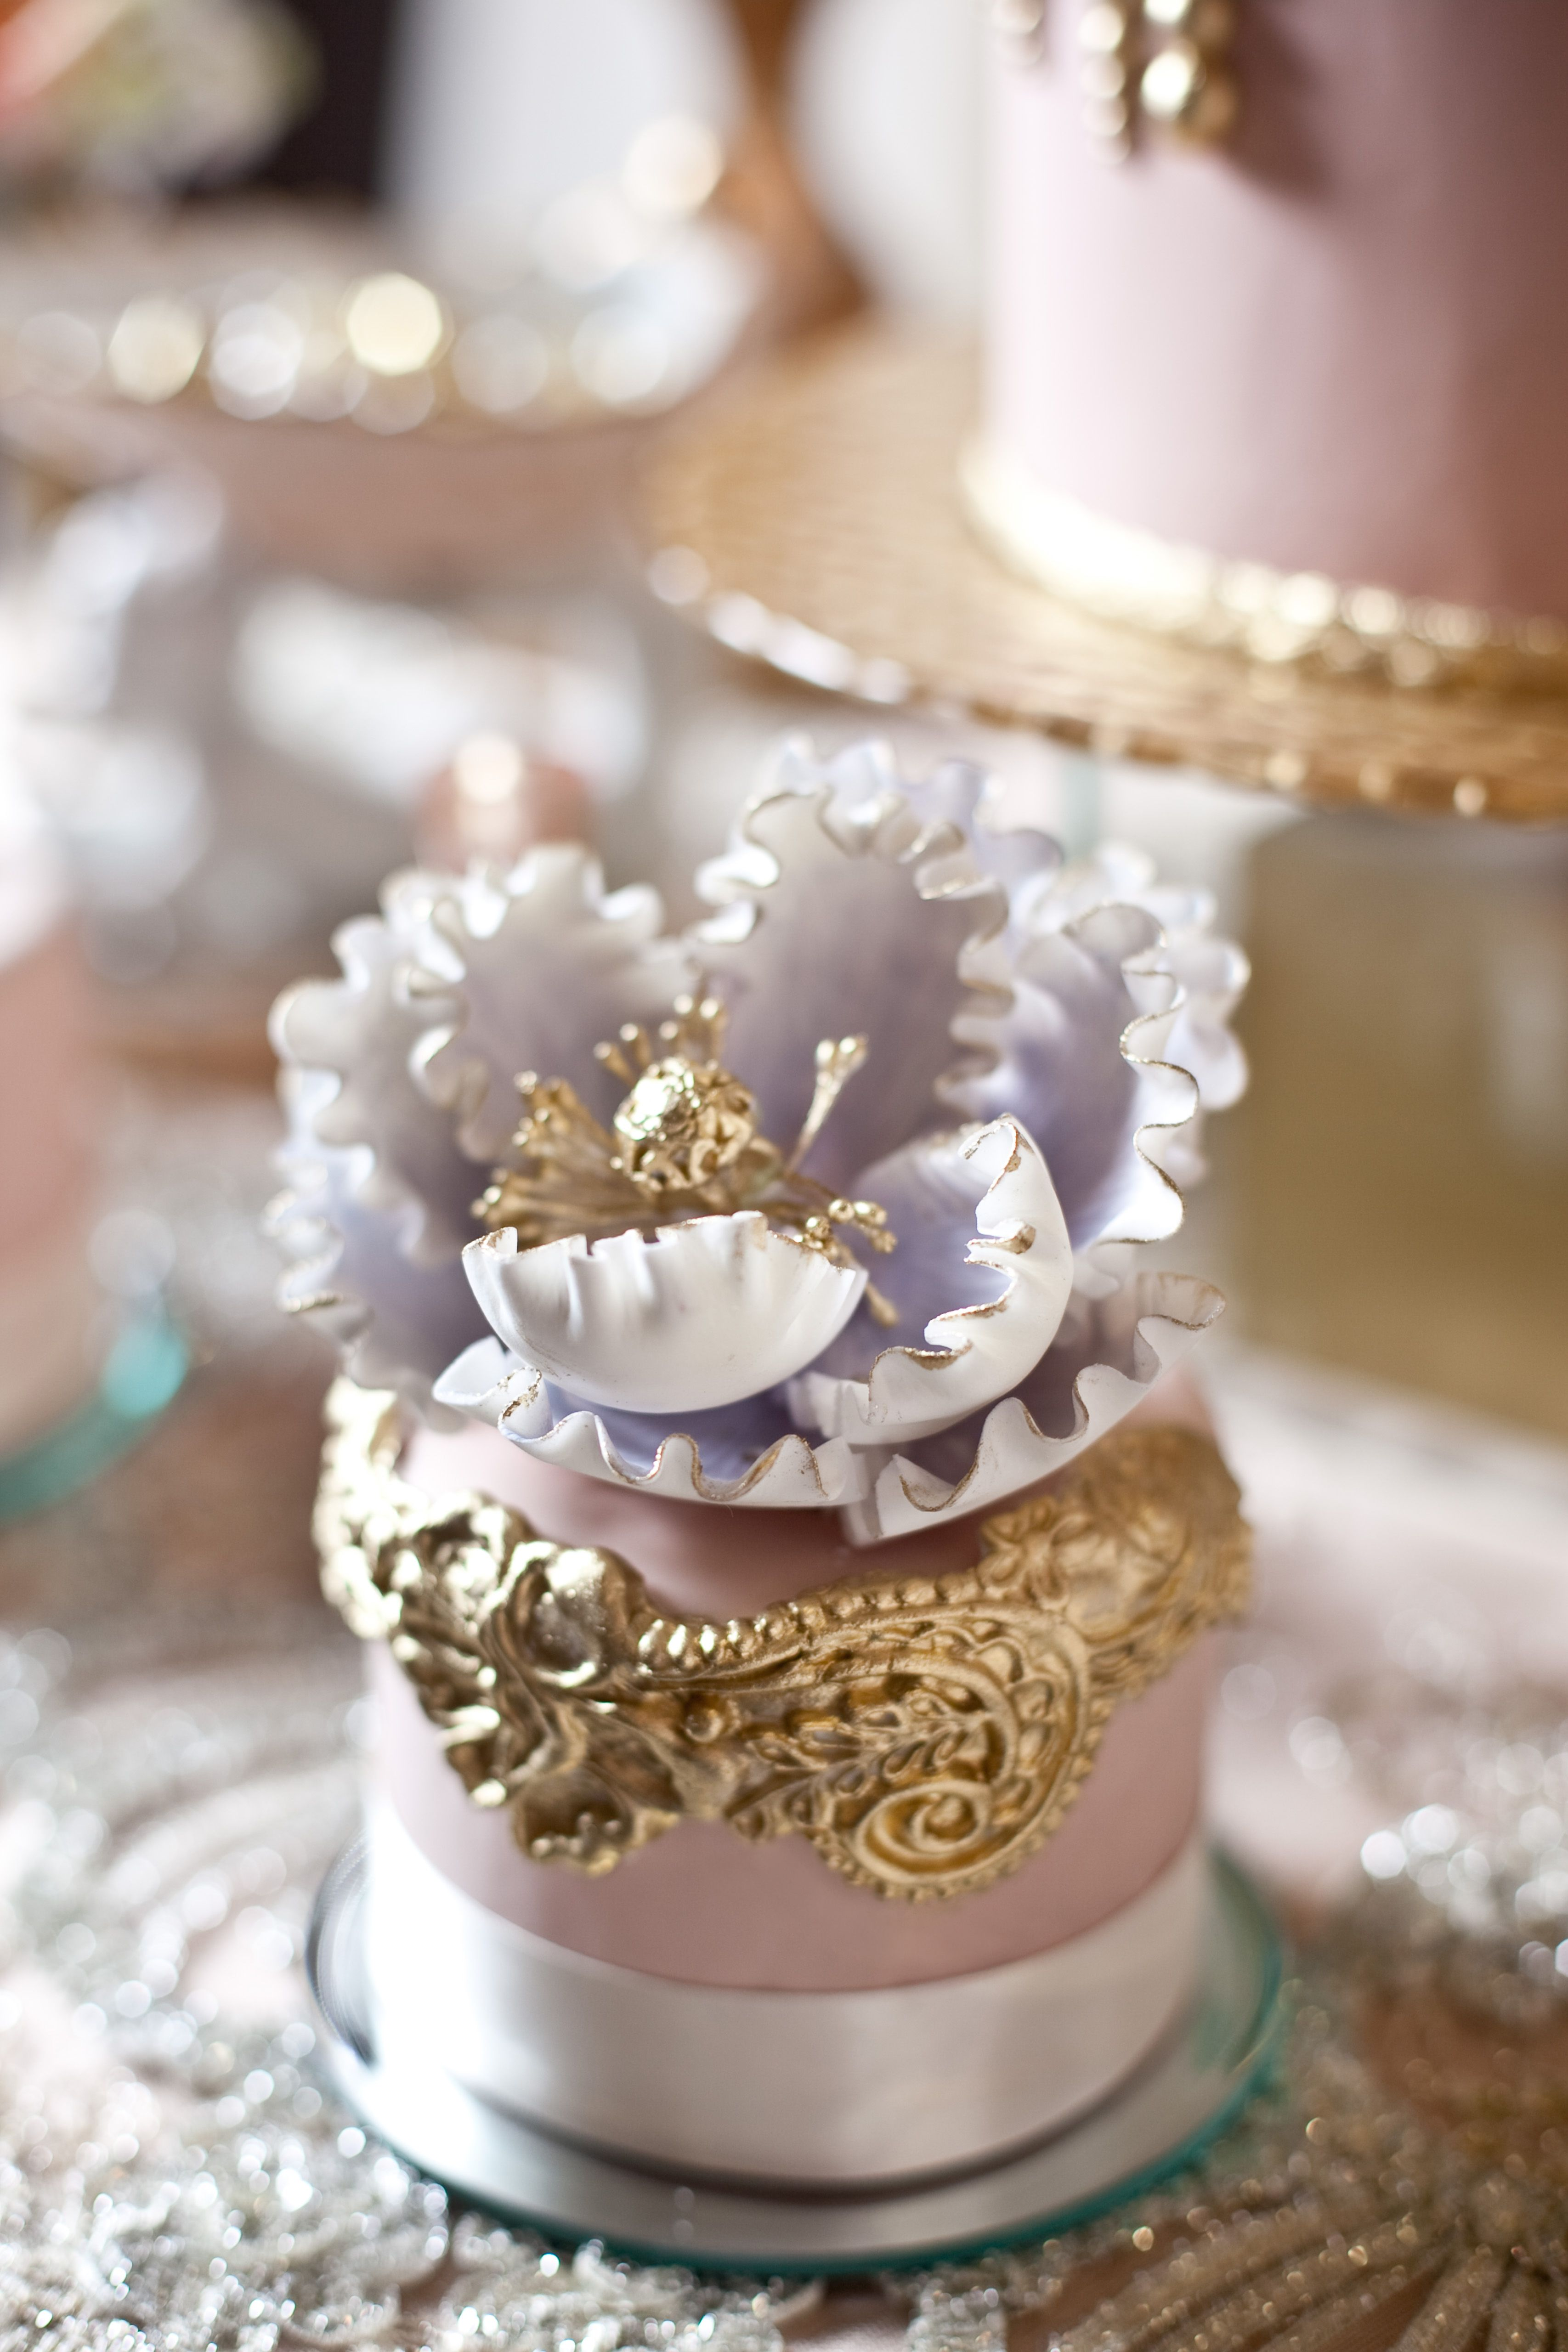 Best toronto wedding cakes with images cool wedding